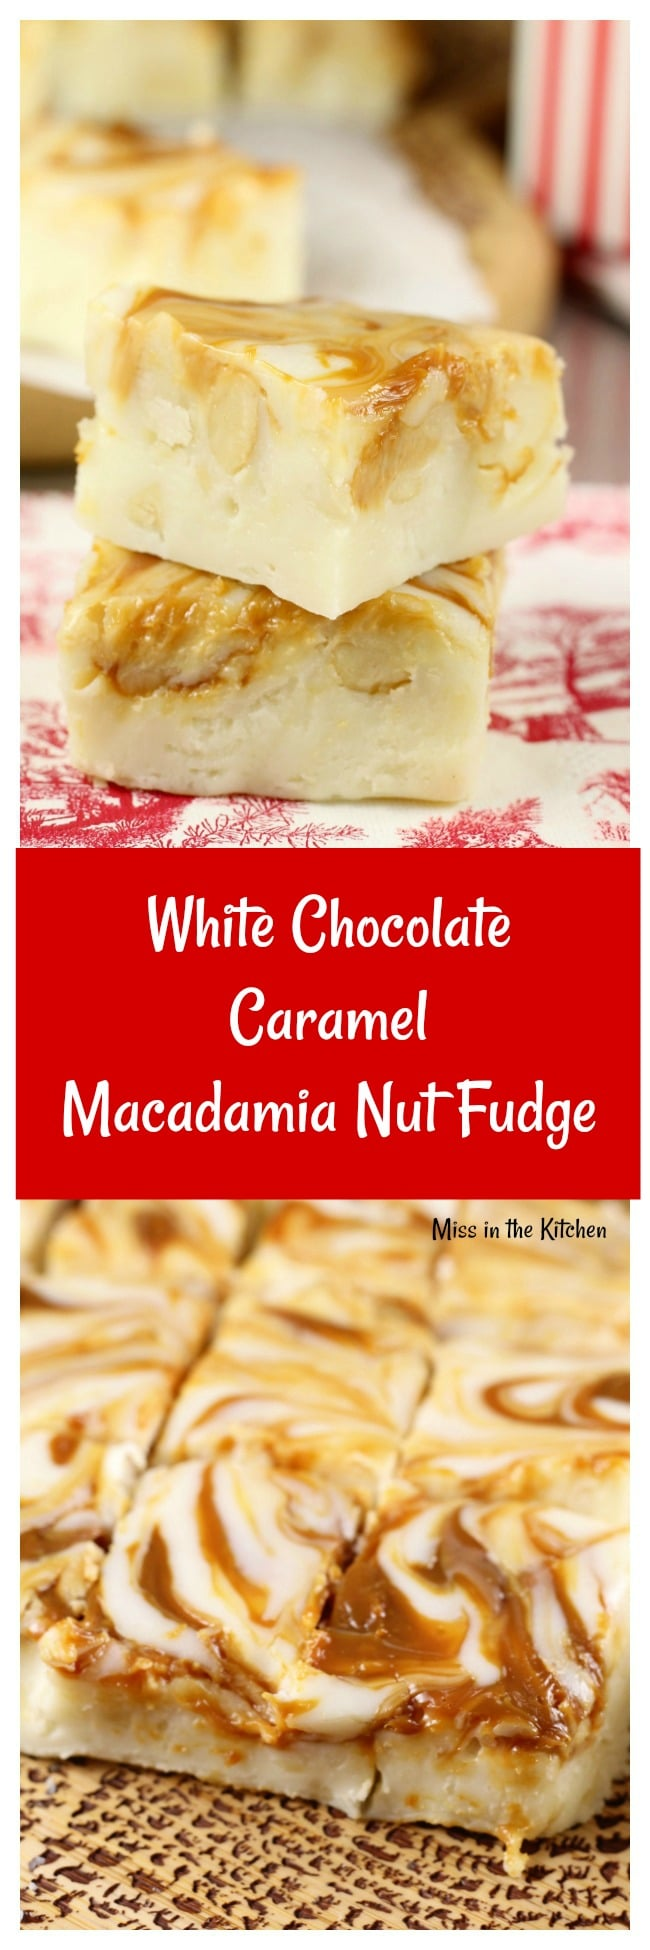 White Chocolate Caramel Macadamia Nut Fudge is a decadent treat for the holidays! Just 5 minutes to make and six ingredients, this is one of the easiest treats you can make! MissintheKitchen.com #recipe #fudge #macadamianuts #christmas #holiday